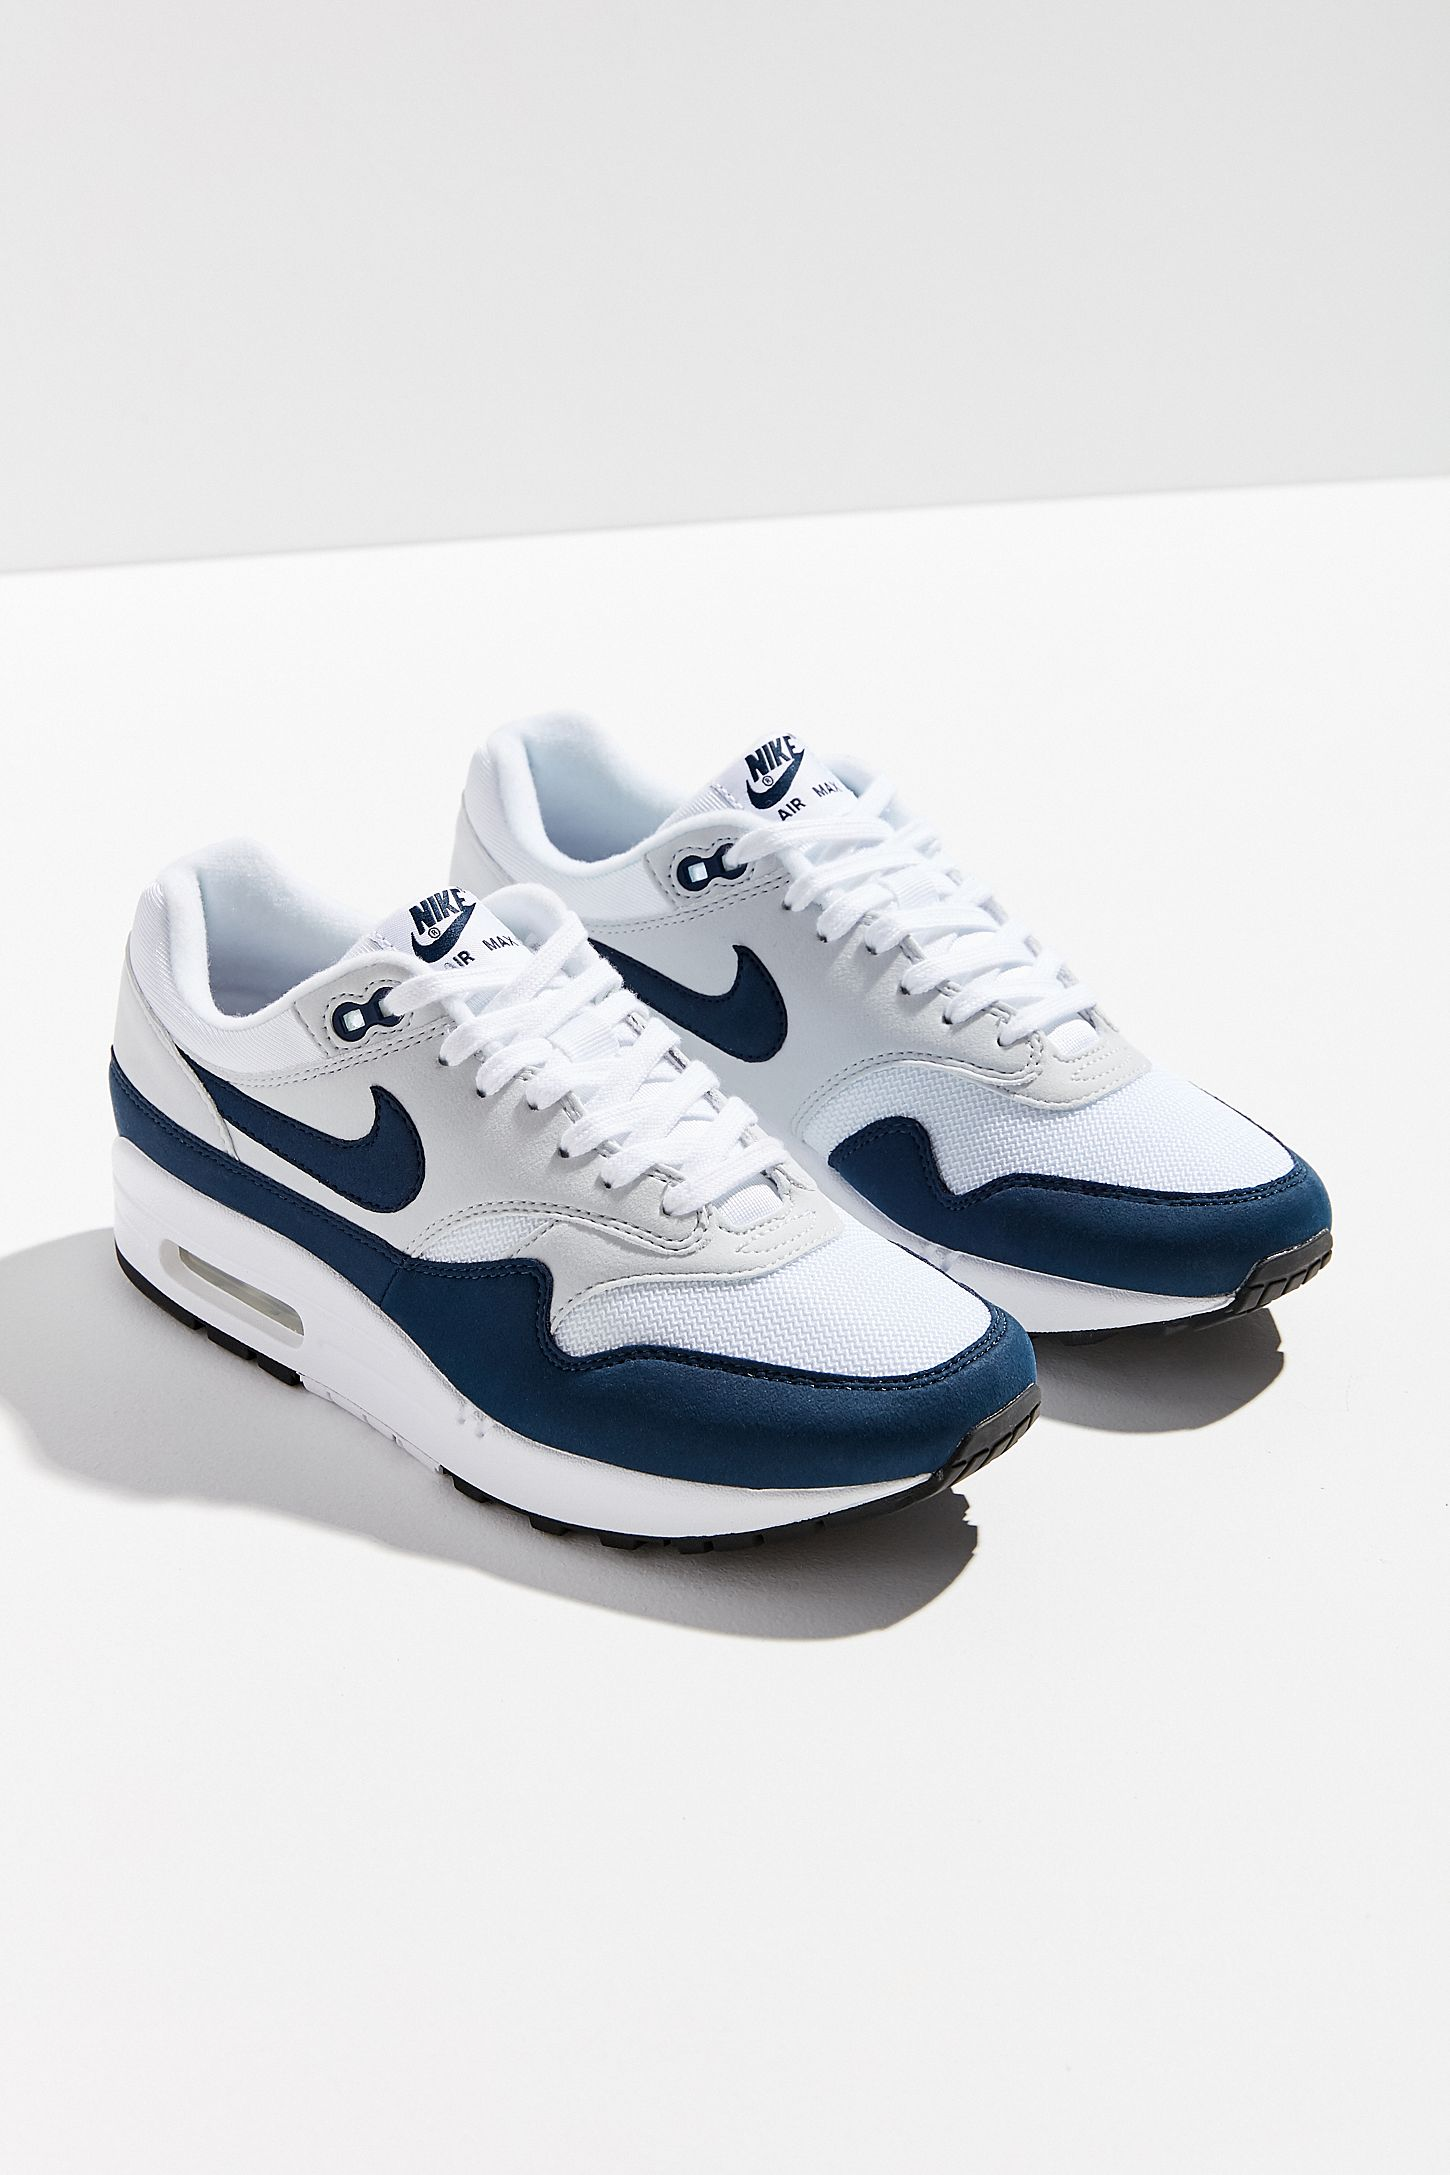 save off 51c77 49bbc Nike Air Max 1 Sneaker   Urban Outfitters